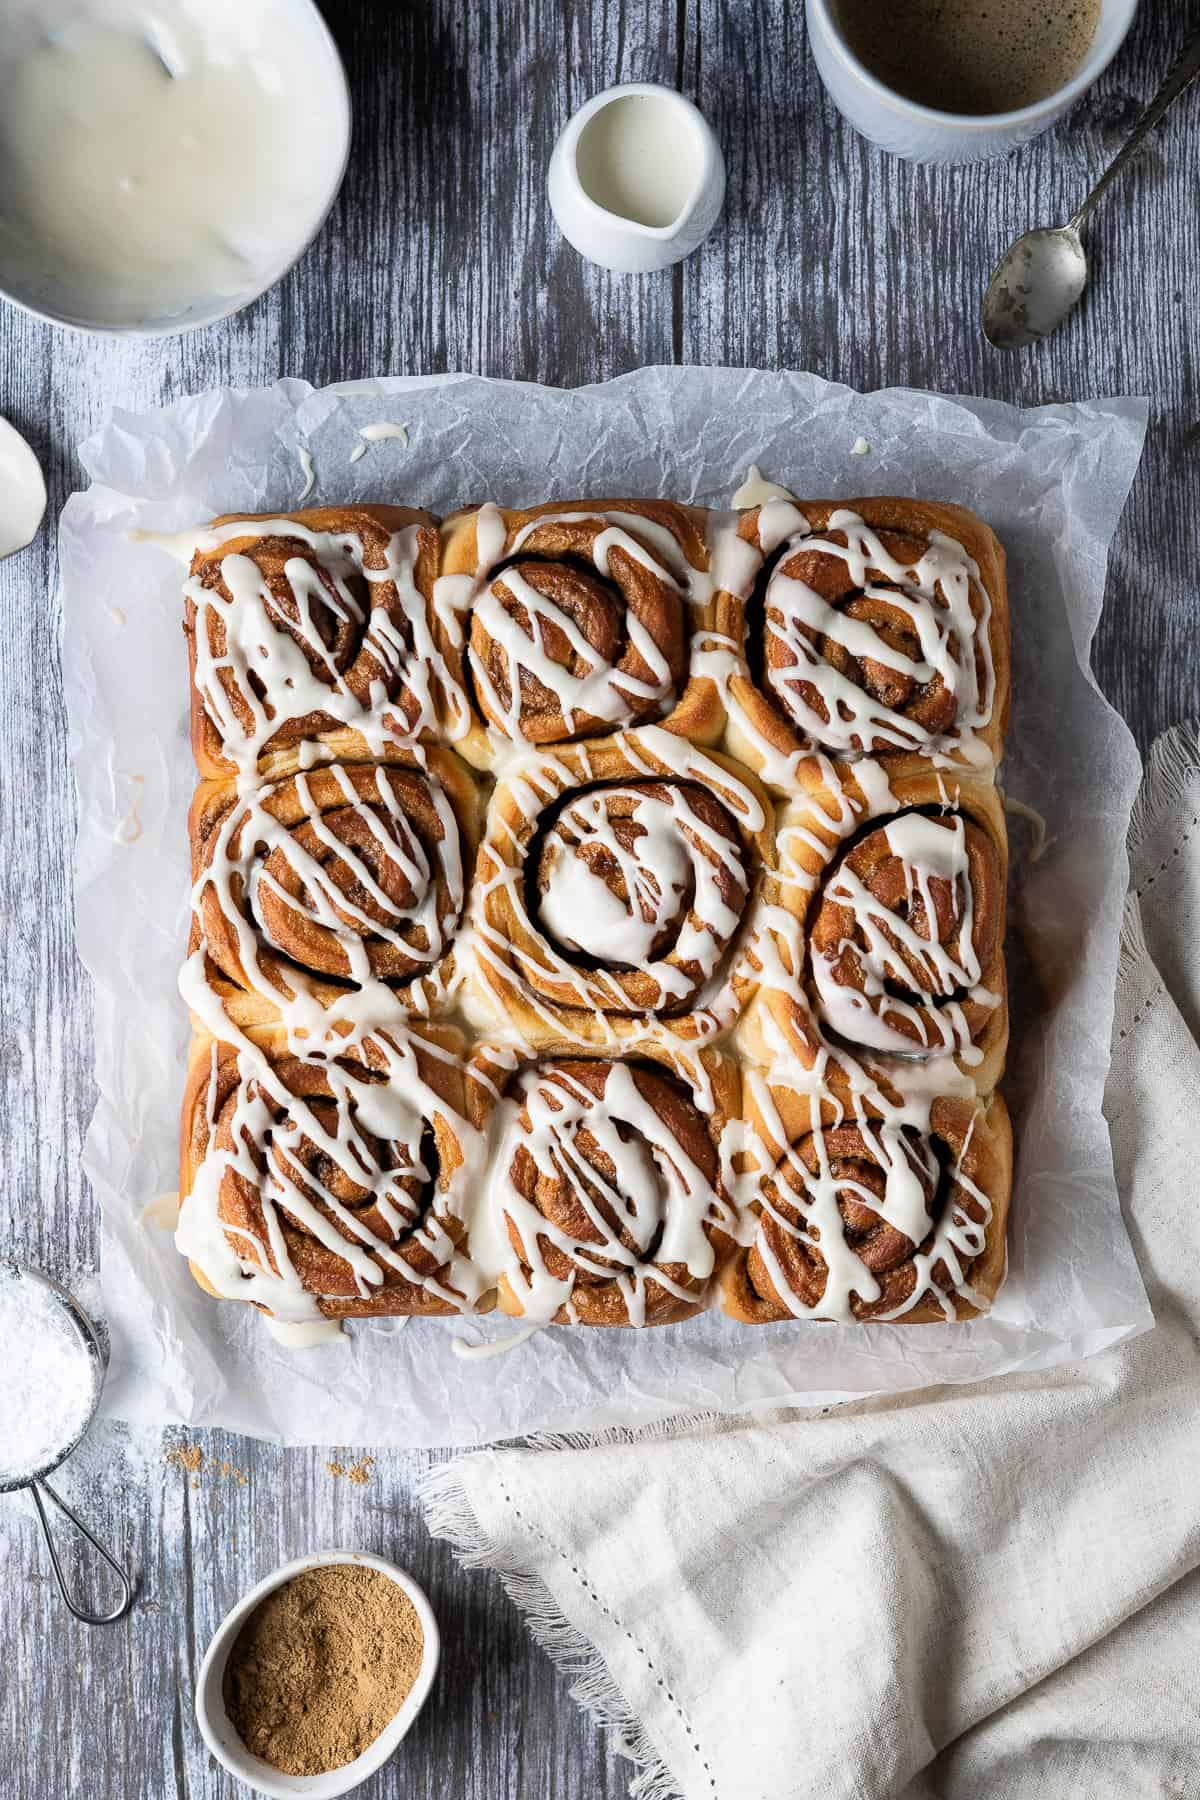 Vegan cinnamon rolls on a sheet of baking parchment on a wooden table surrounded by a bowl of glaze, jug of milk, cup of coffee, beige cloth and bowl of cinnamon.